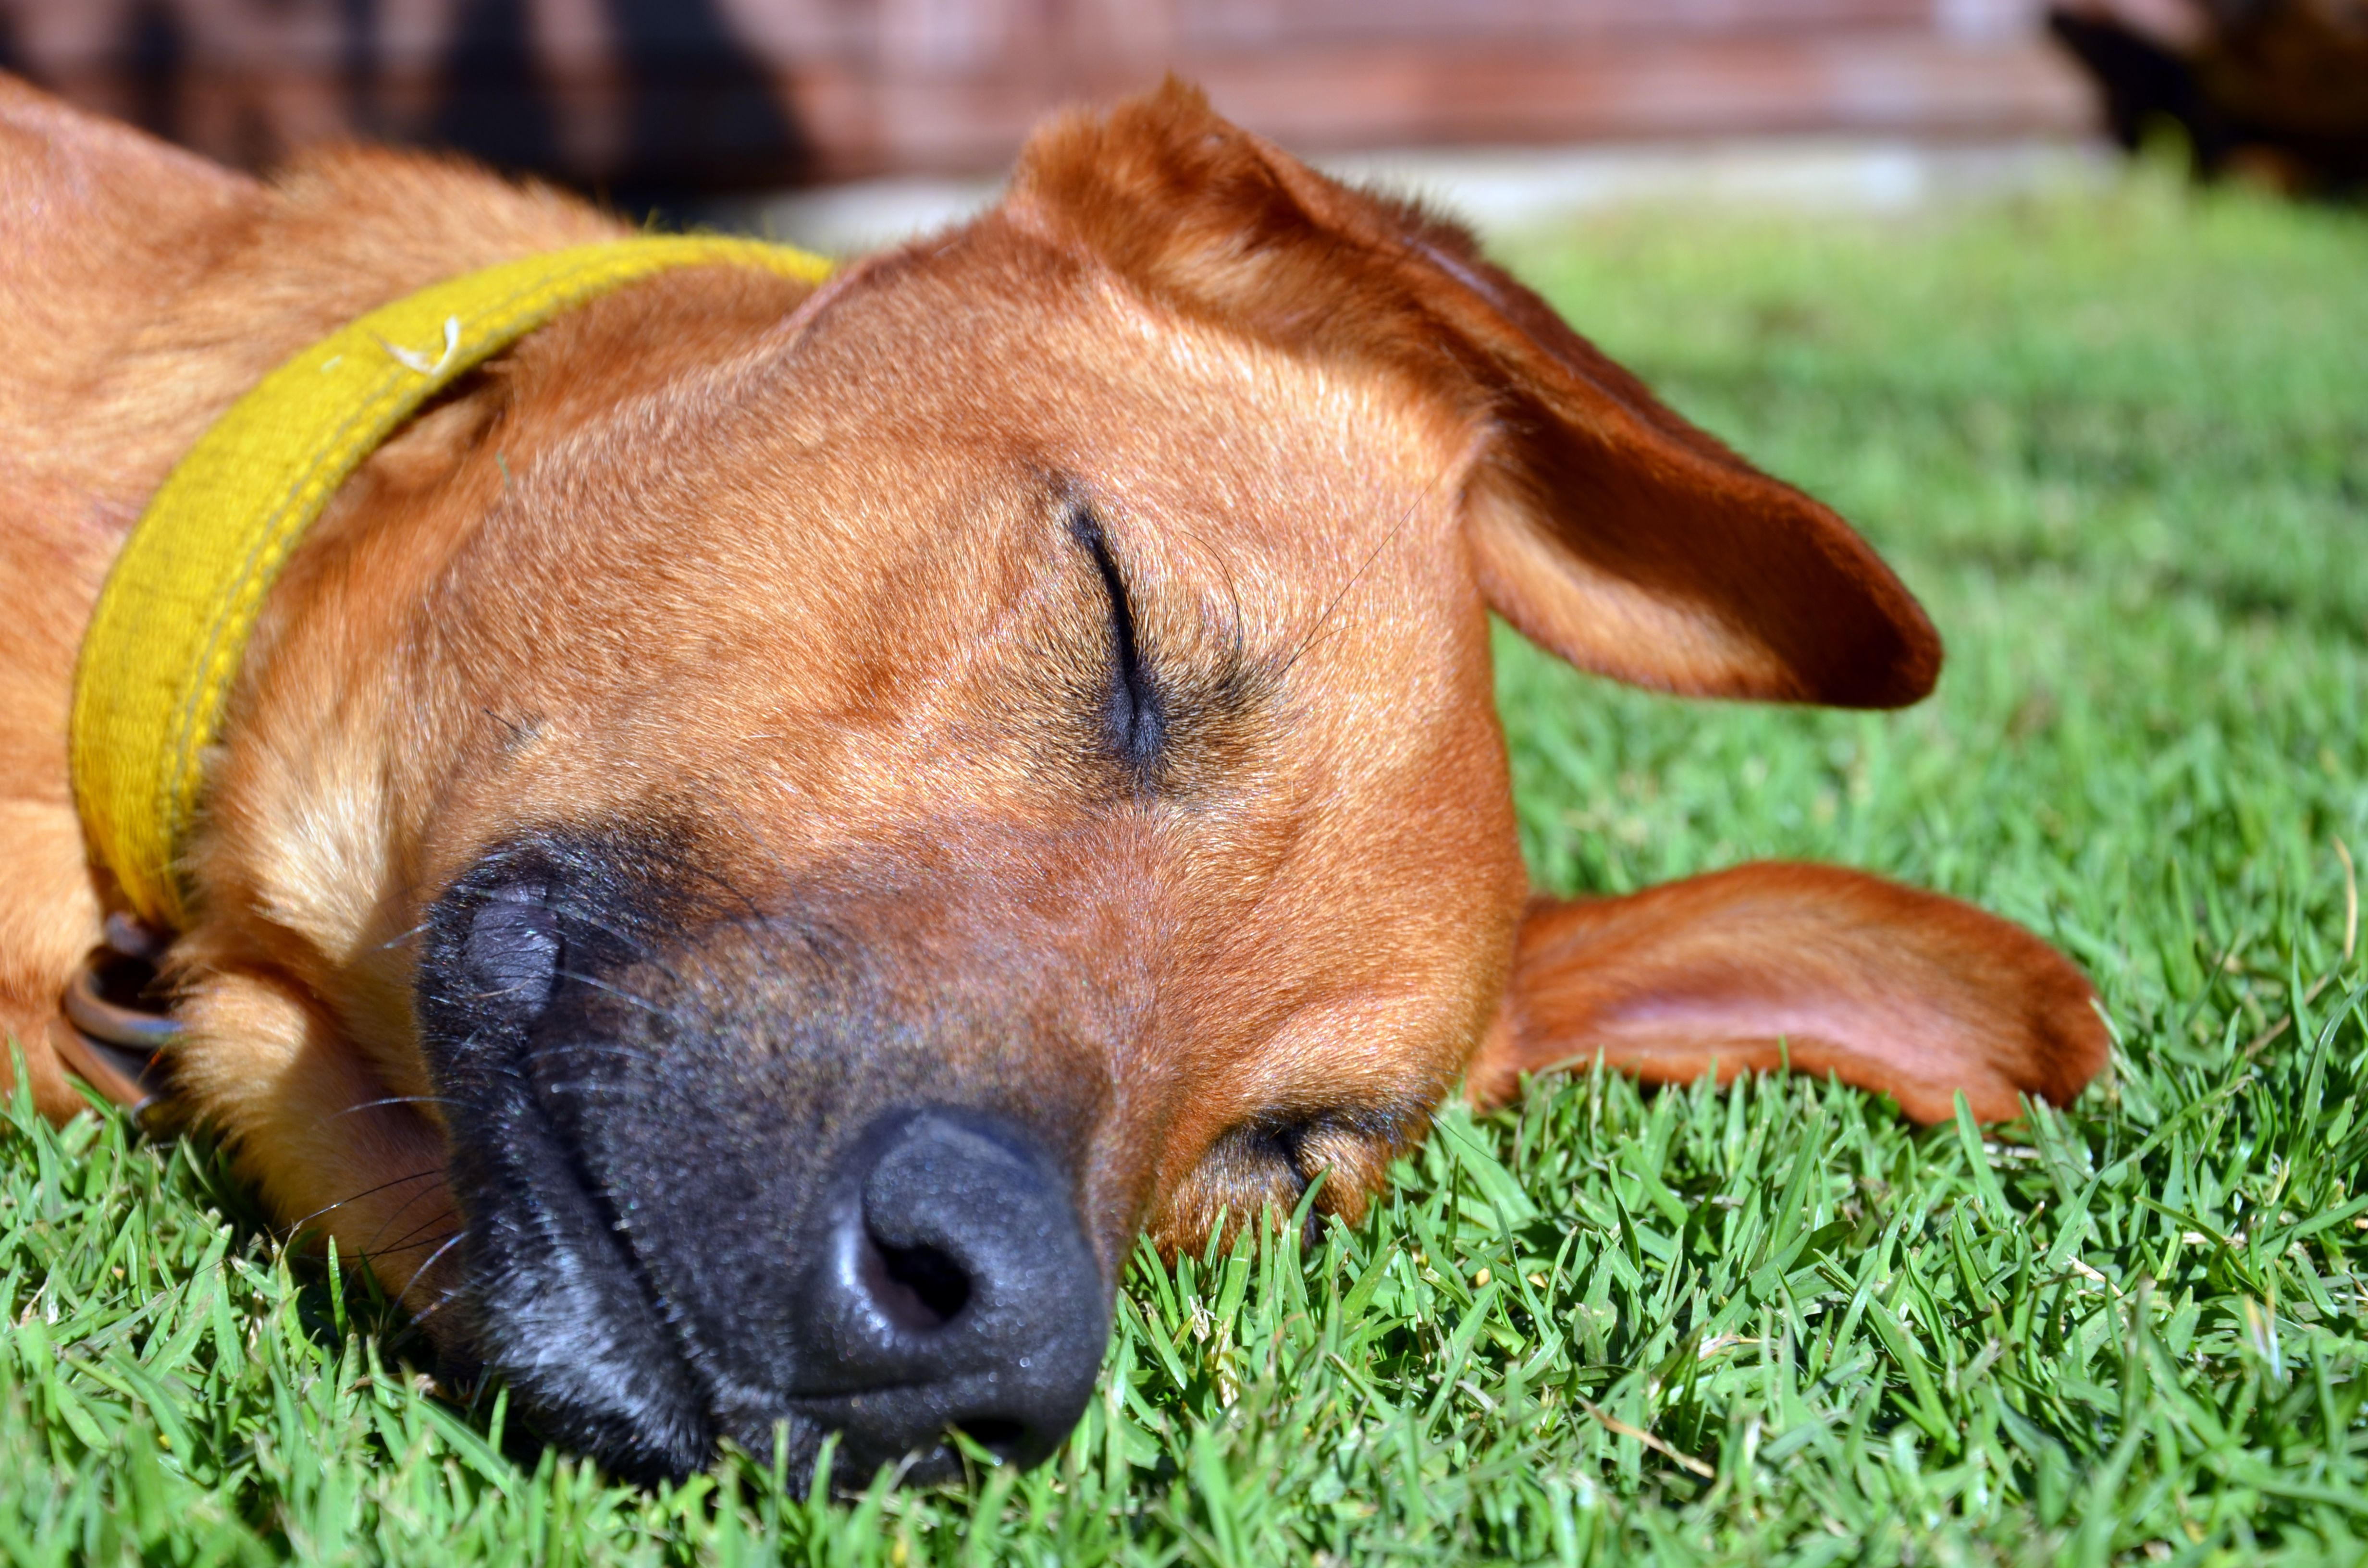 Fake Grass For Dogs PetFriendly Artificial Turf Your Dog